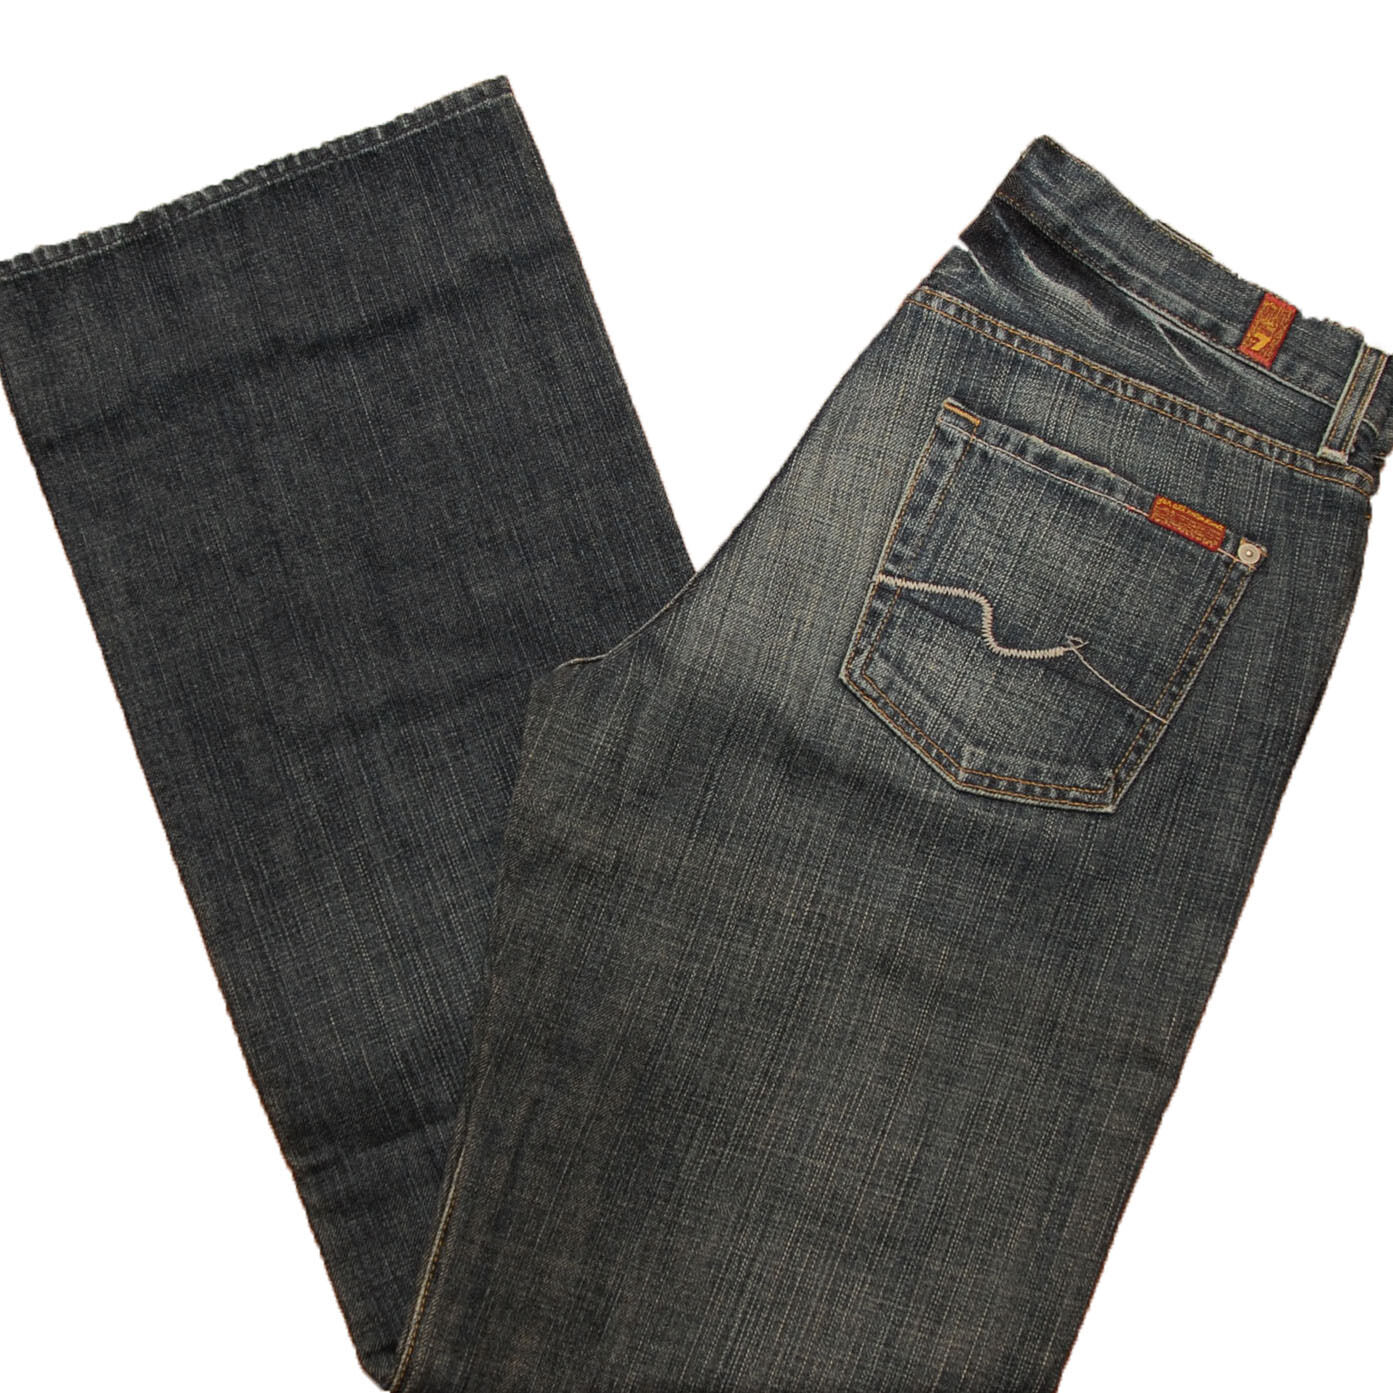 7 For All Mankind Mens Jeans Relaxed Fit 371u Classic Dark Wash 28x32 T521371